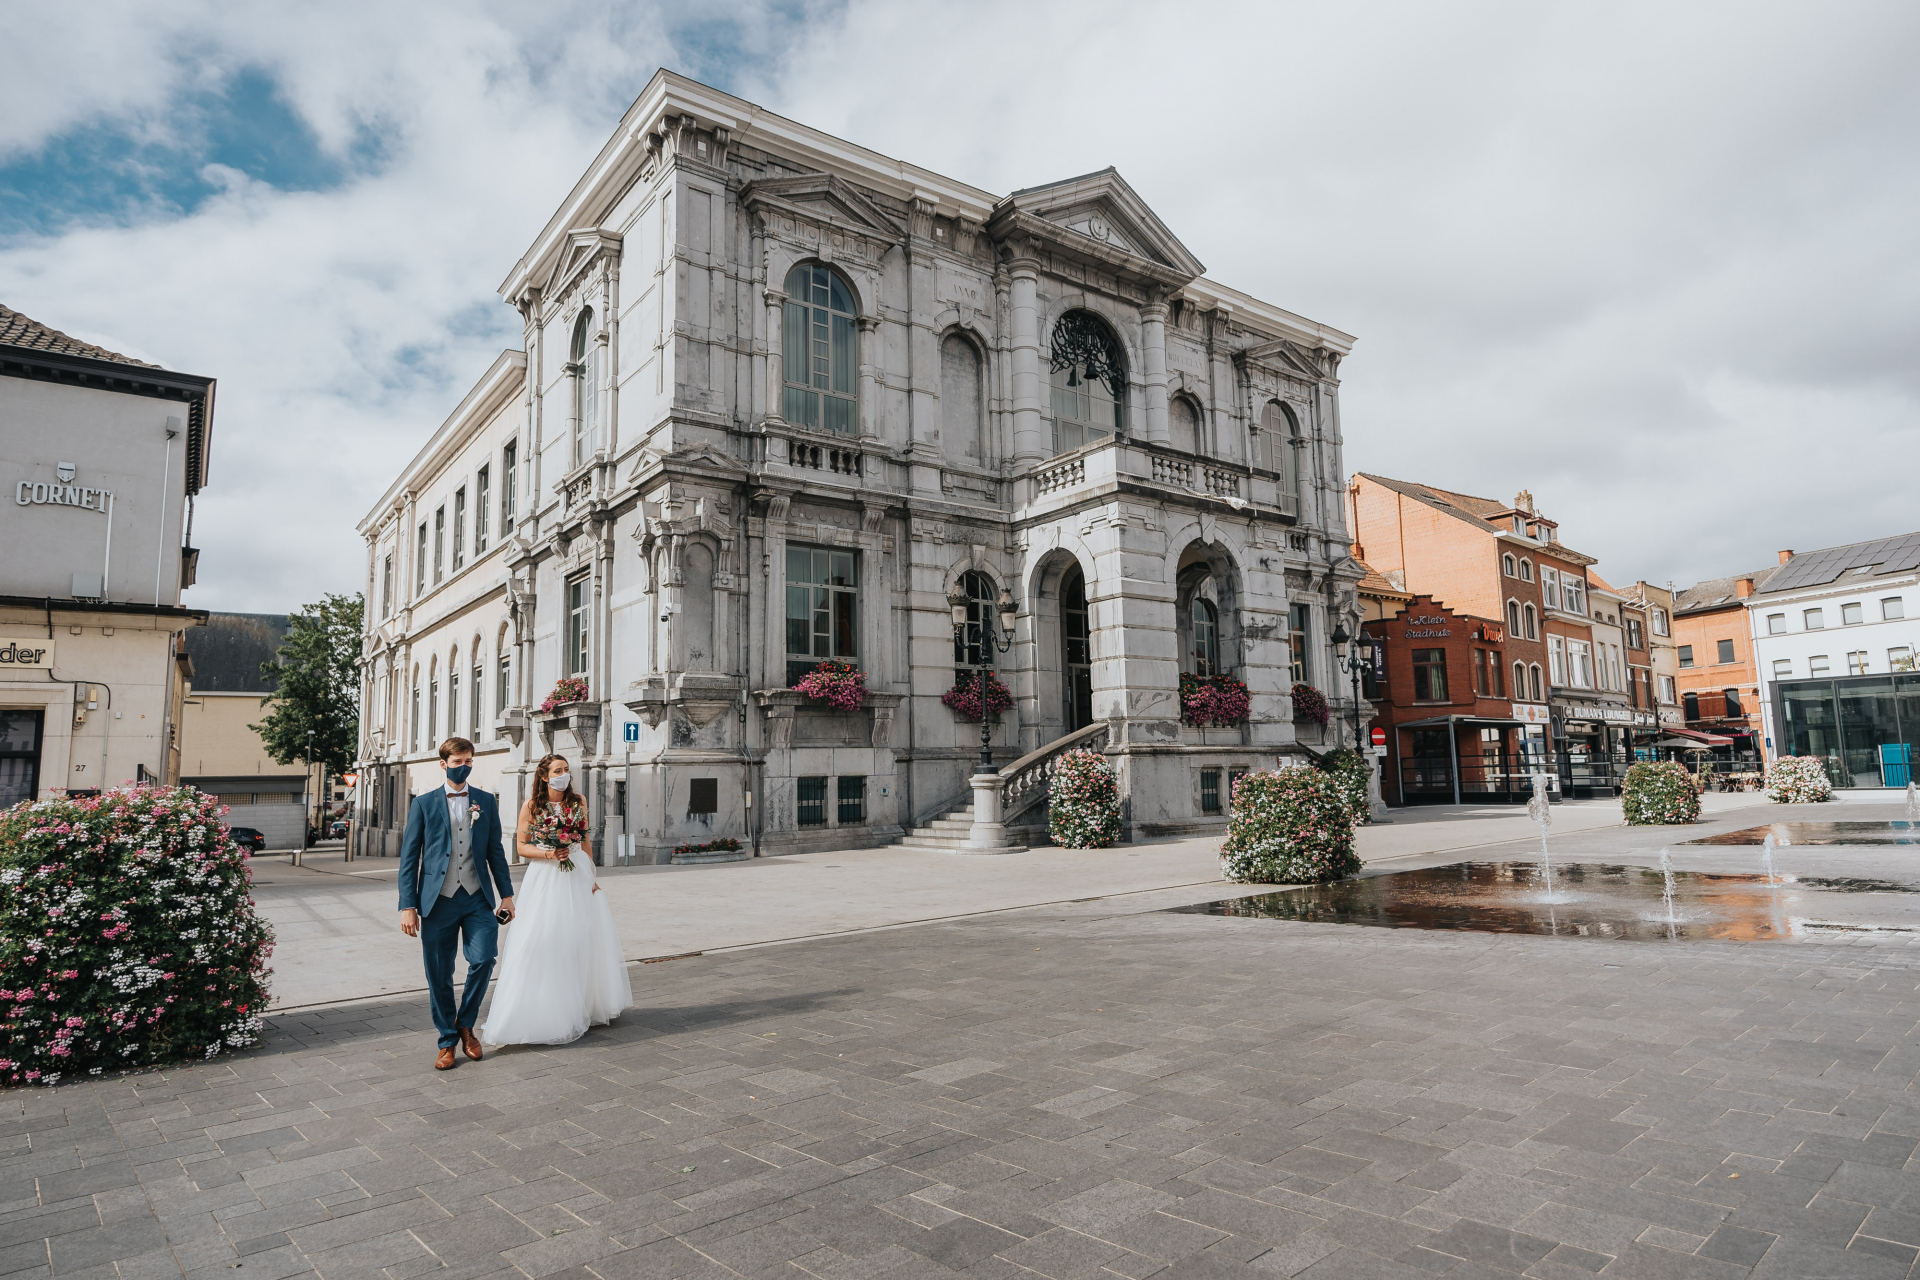 City Hall Vilvoorde, Belgium Elopement Photos | Arriving at the City Hall Vilvoorde where strict regulations are active